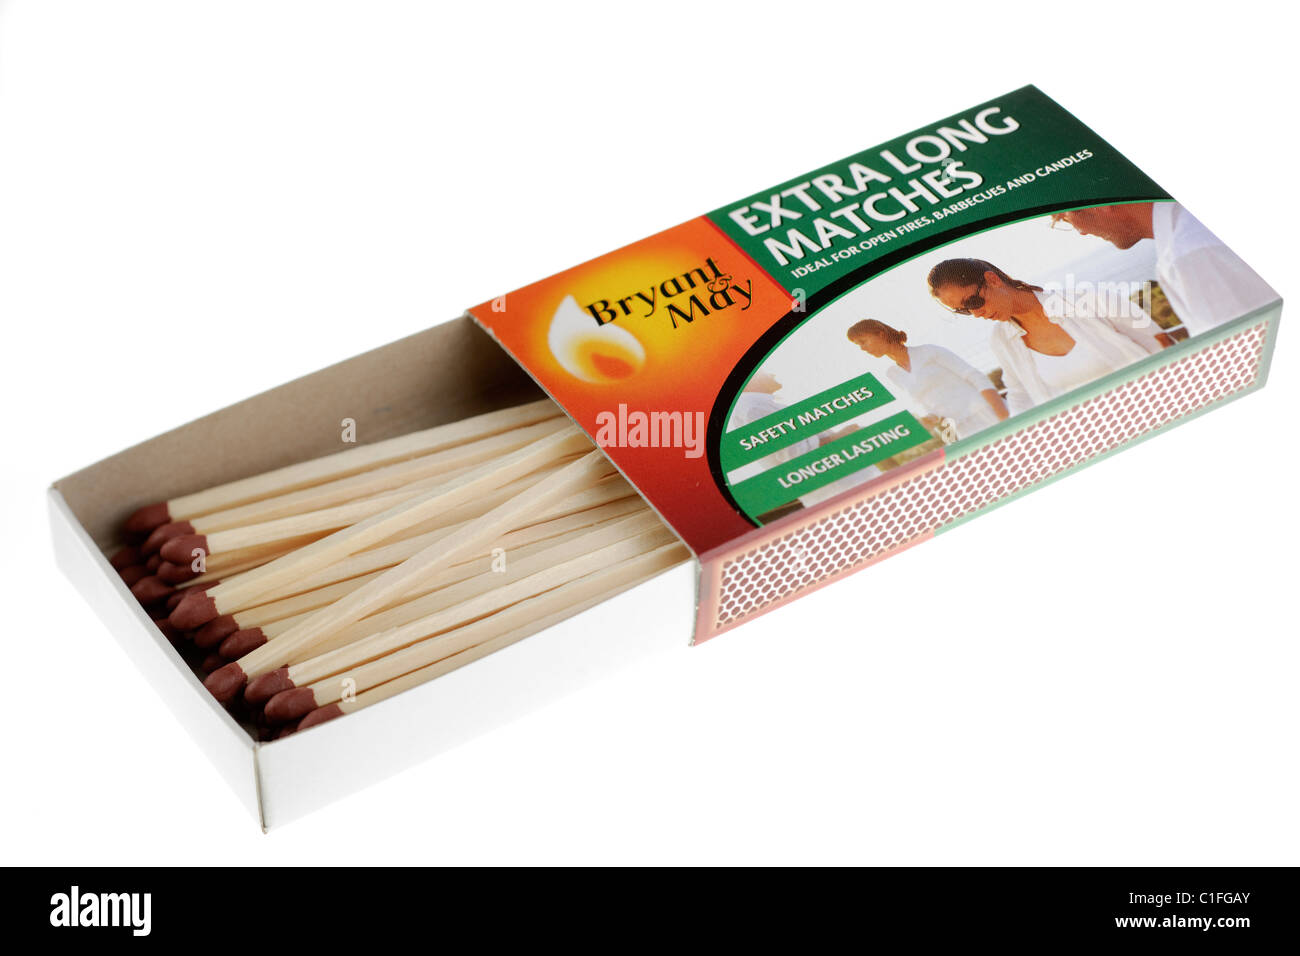 Open box of Bryant and May longer lasting extra long safety matches - Stock Image